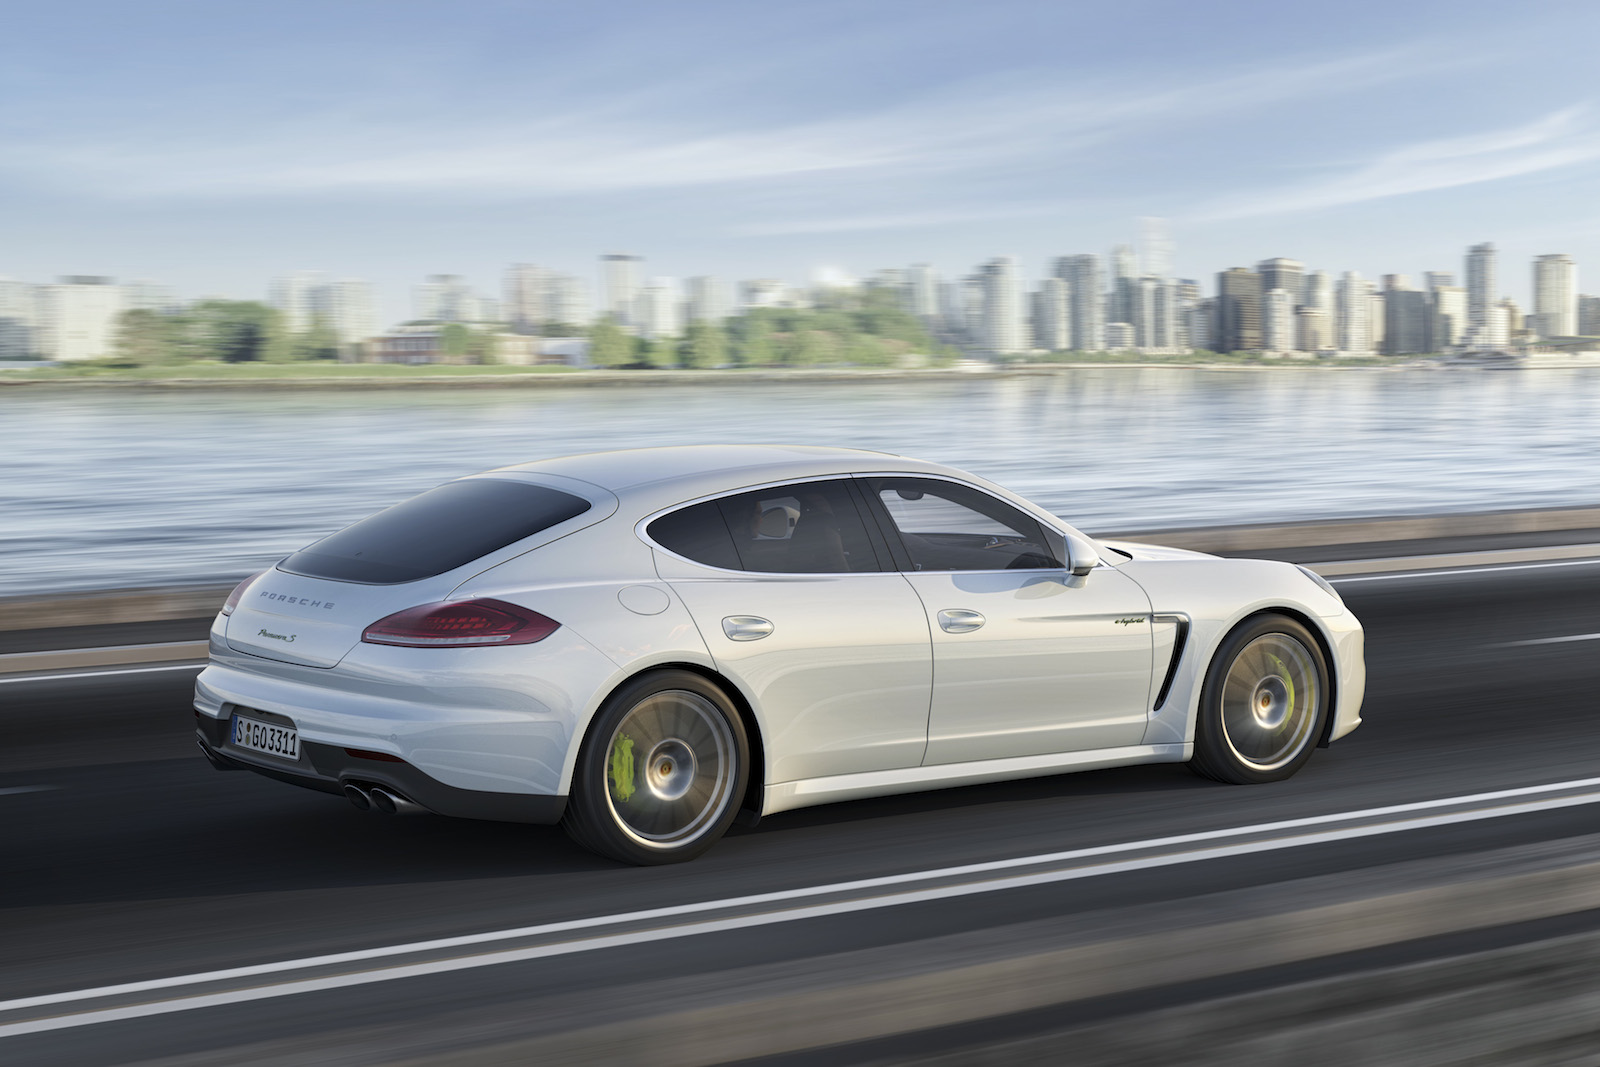 2016 Porsche Panamera Review, Ratings, Specs, Prices, and